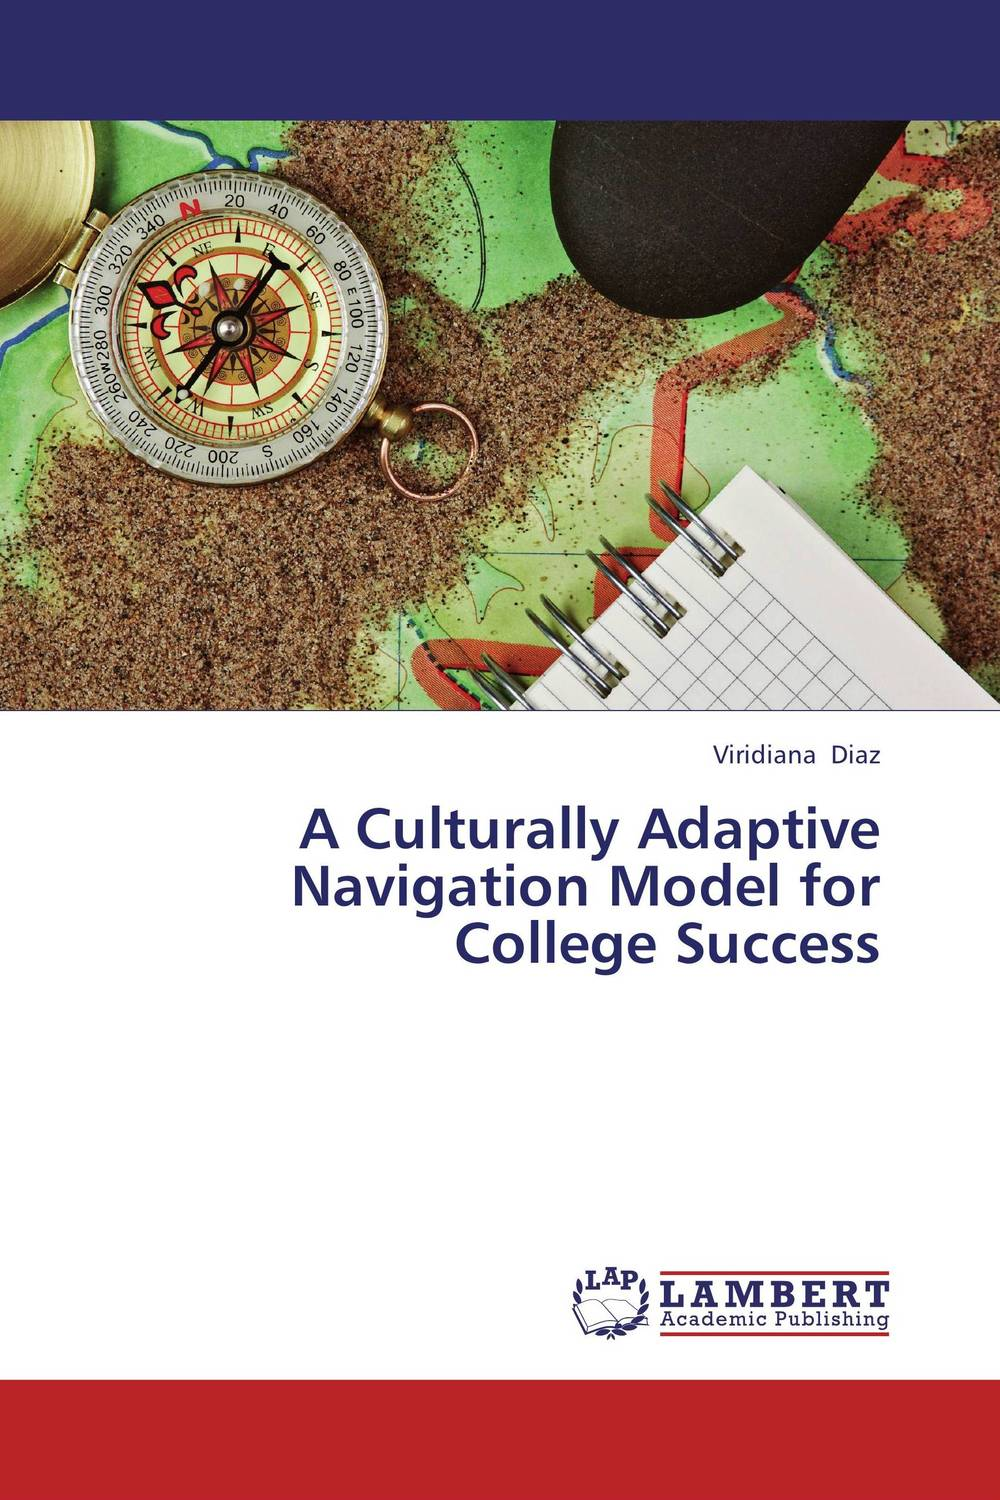 A Culturally Adaptive Navigation Model for College Success